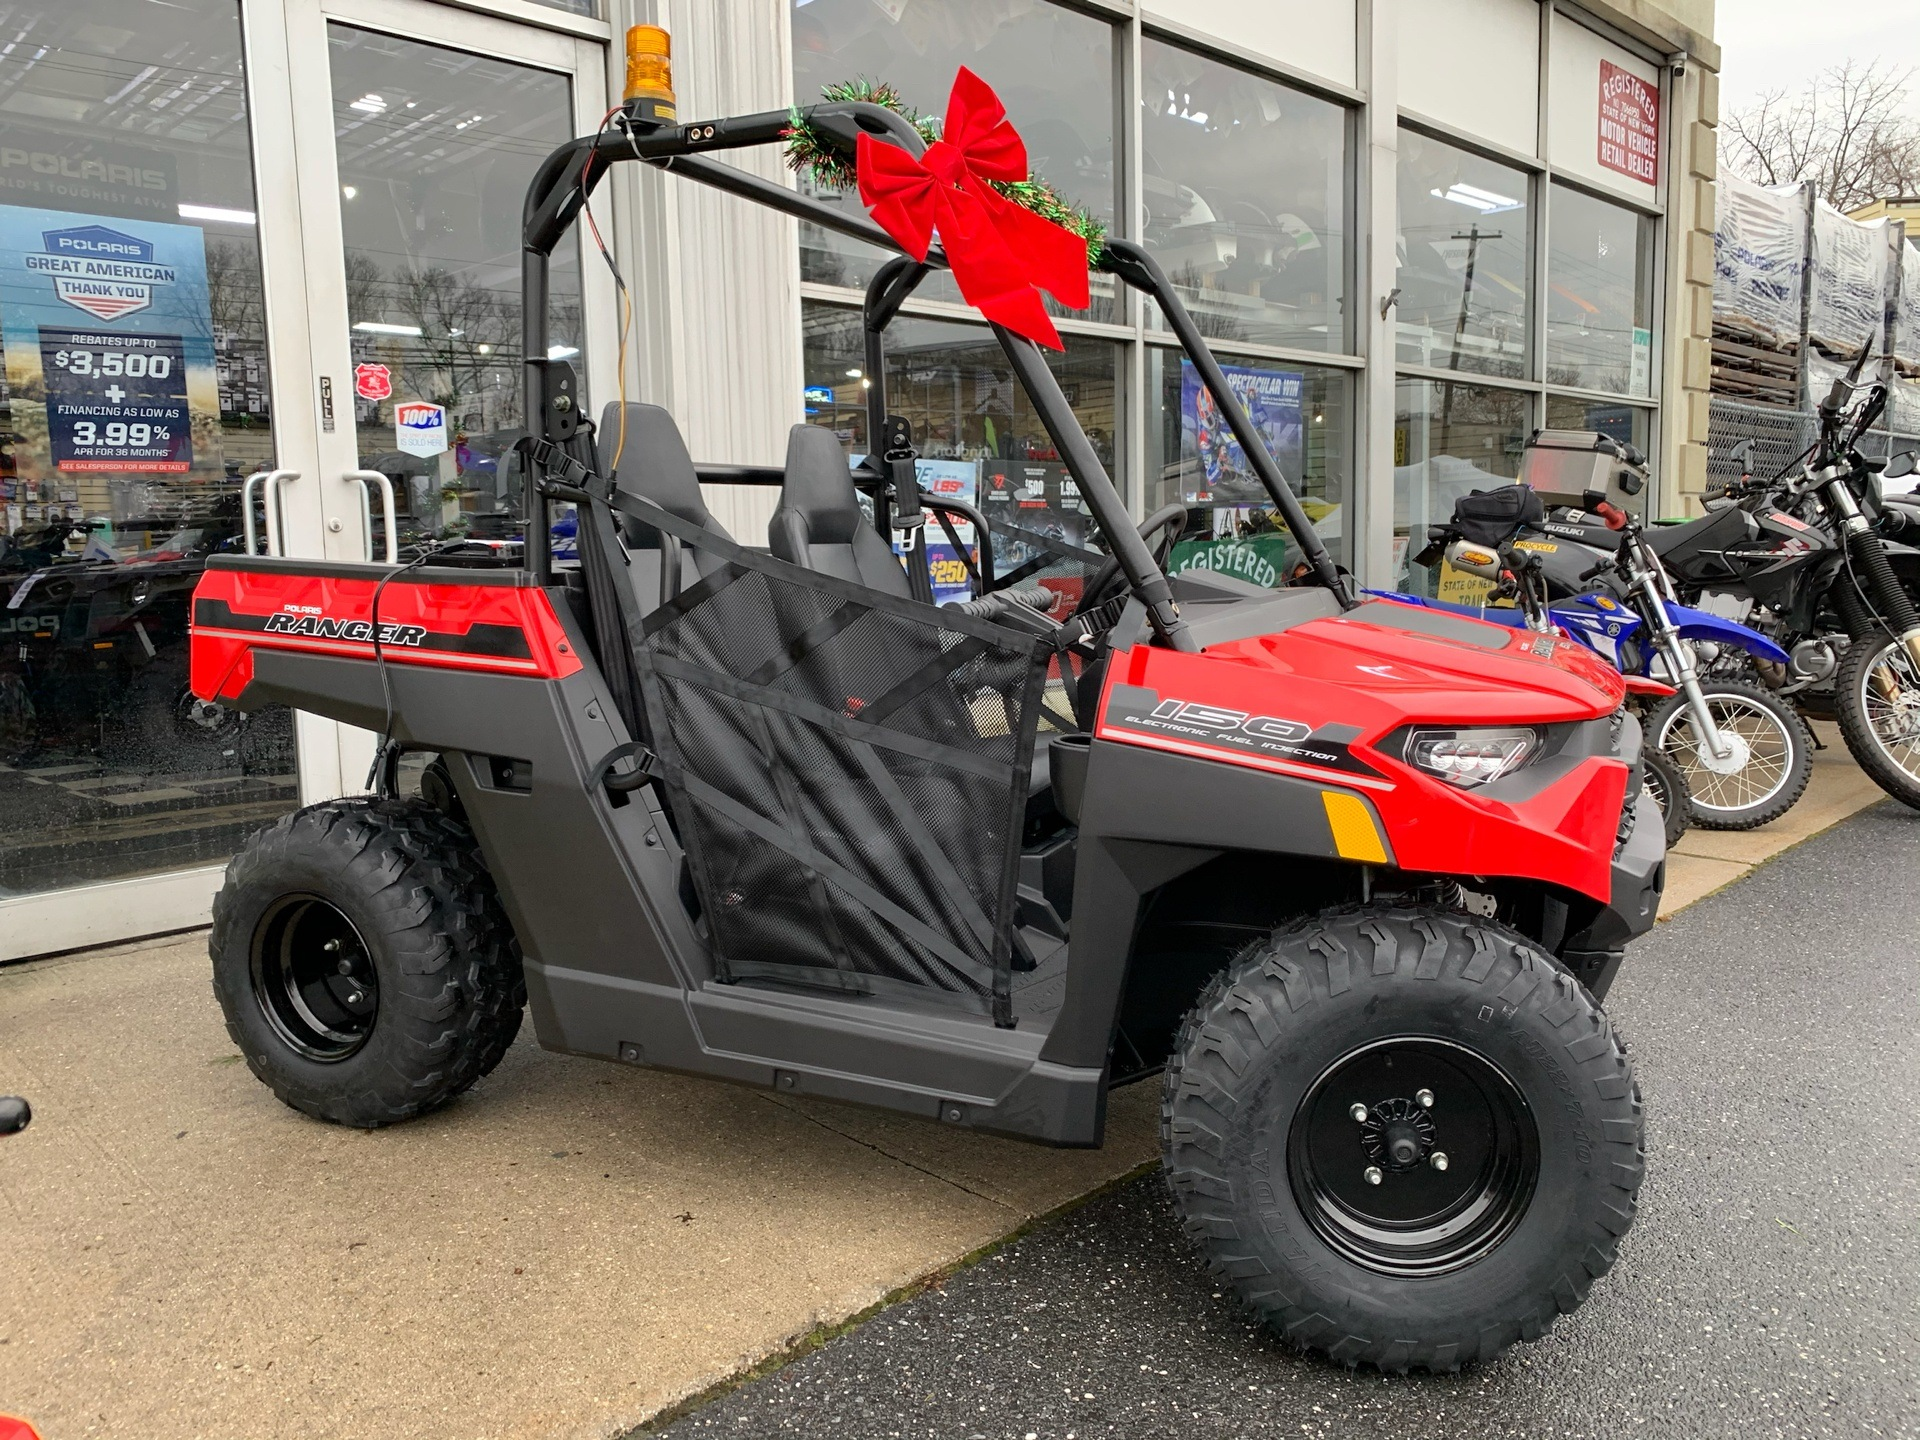 2019 Polaris Ranger 150 EFI in Huntington Station, New York - Photo 8